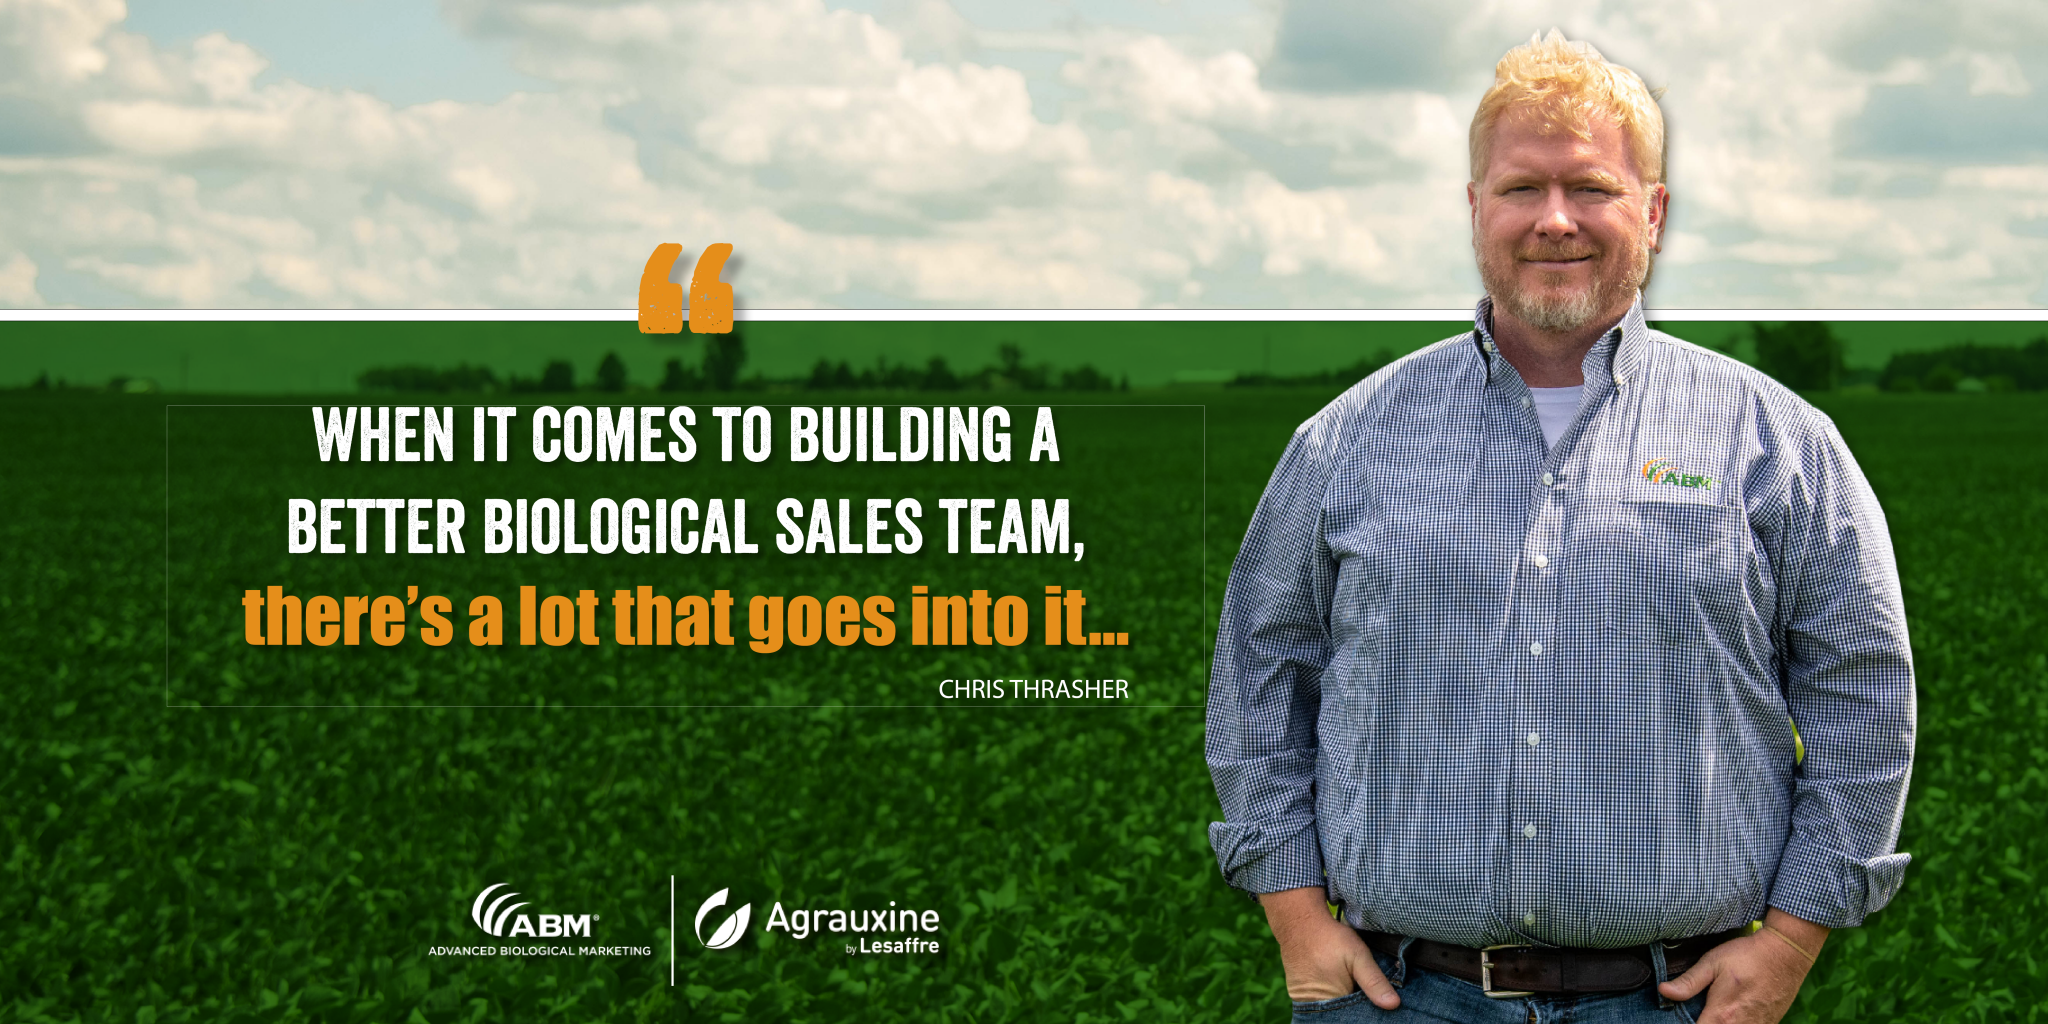 3 Characteristics to Look For in a Biological Sales Team